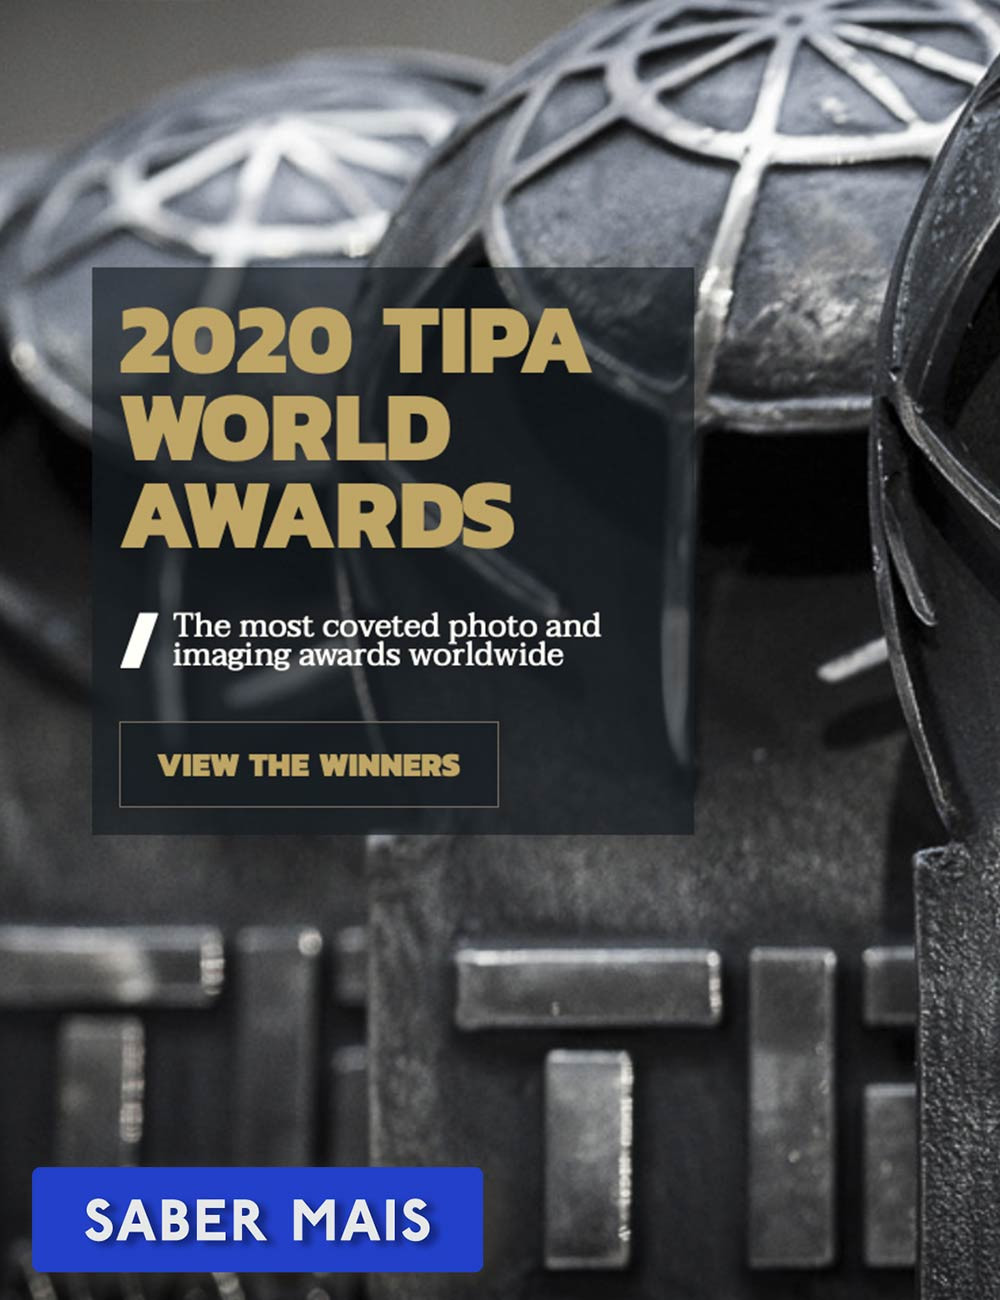 TIPA WORLD AWARDS 2020